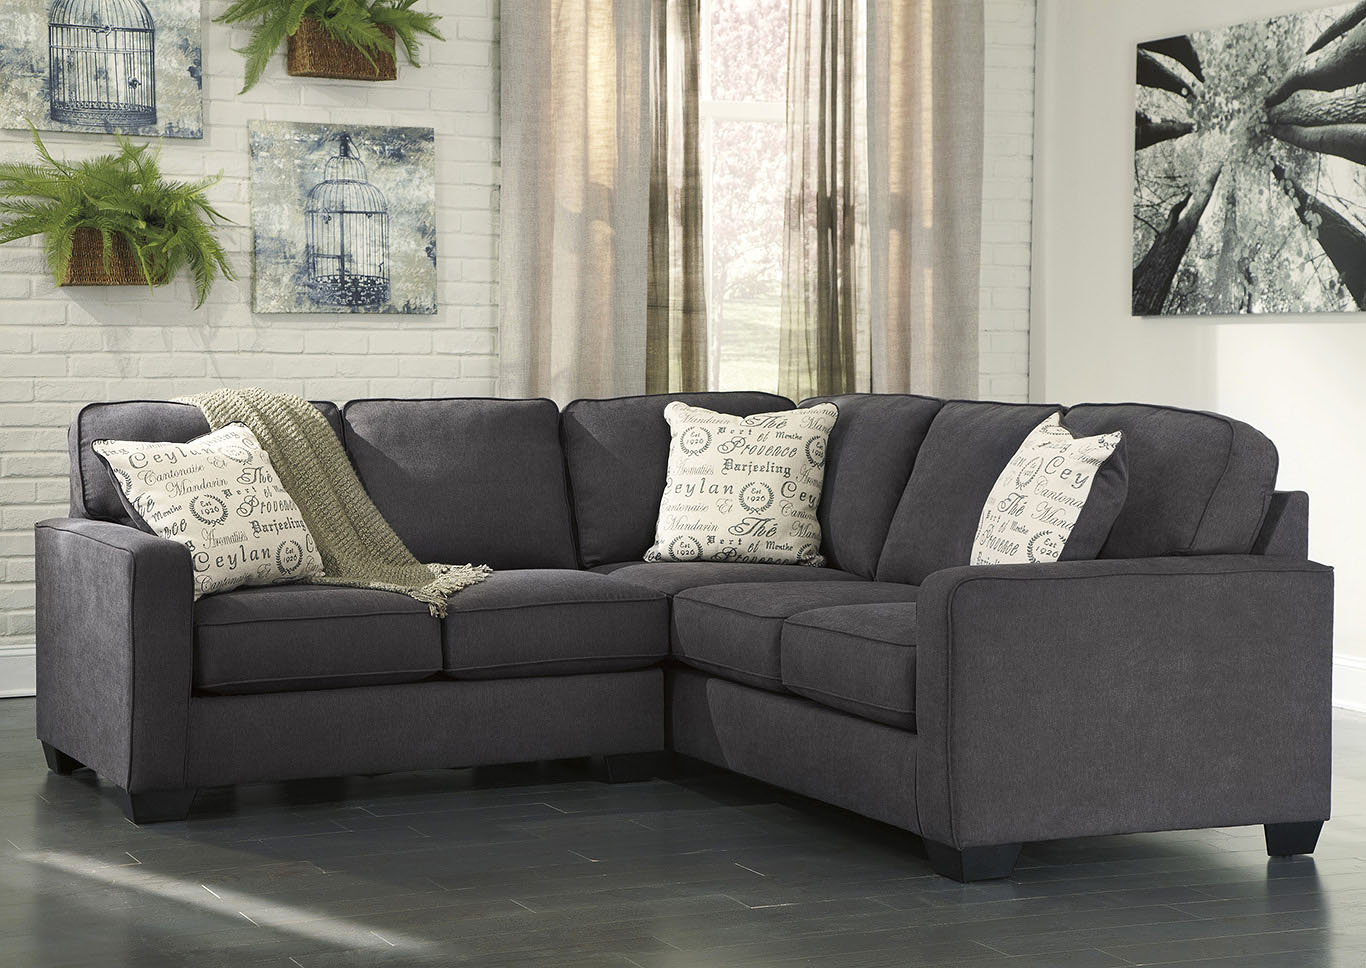 Alenya Charcoal Right Facing Sectional,Signature Design By Ashley